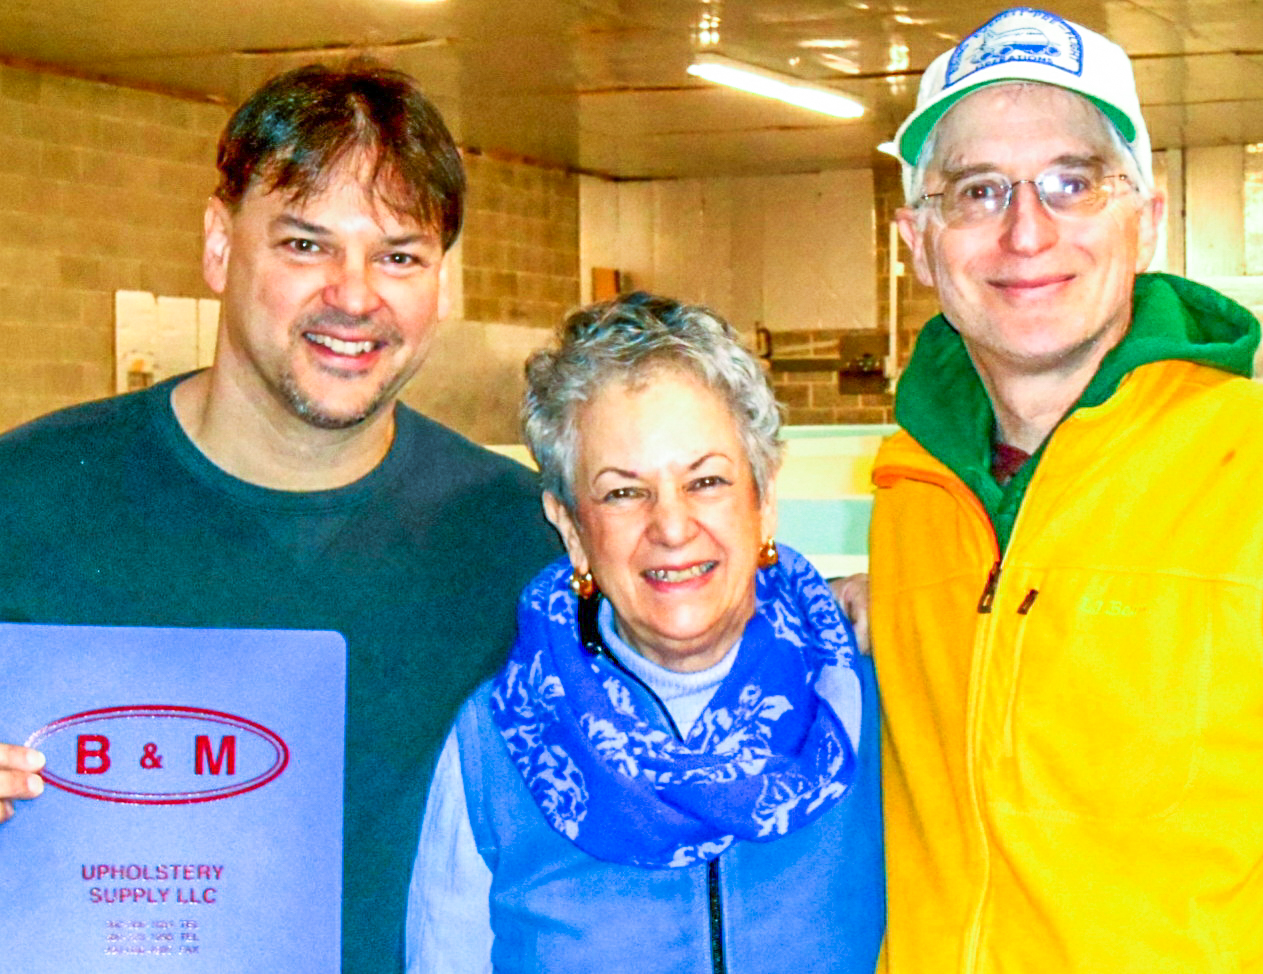 Bob Gagnon, Jr. and Mary Gagnon from B & M Upholstery Supply with Willie Althammer, DC-3 restoration volunteer. (photo via NEAM)